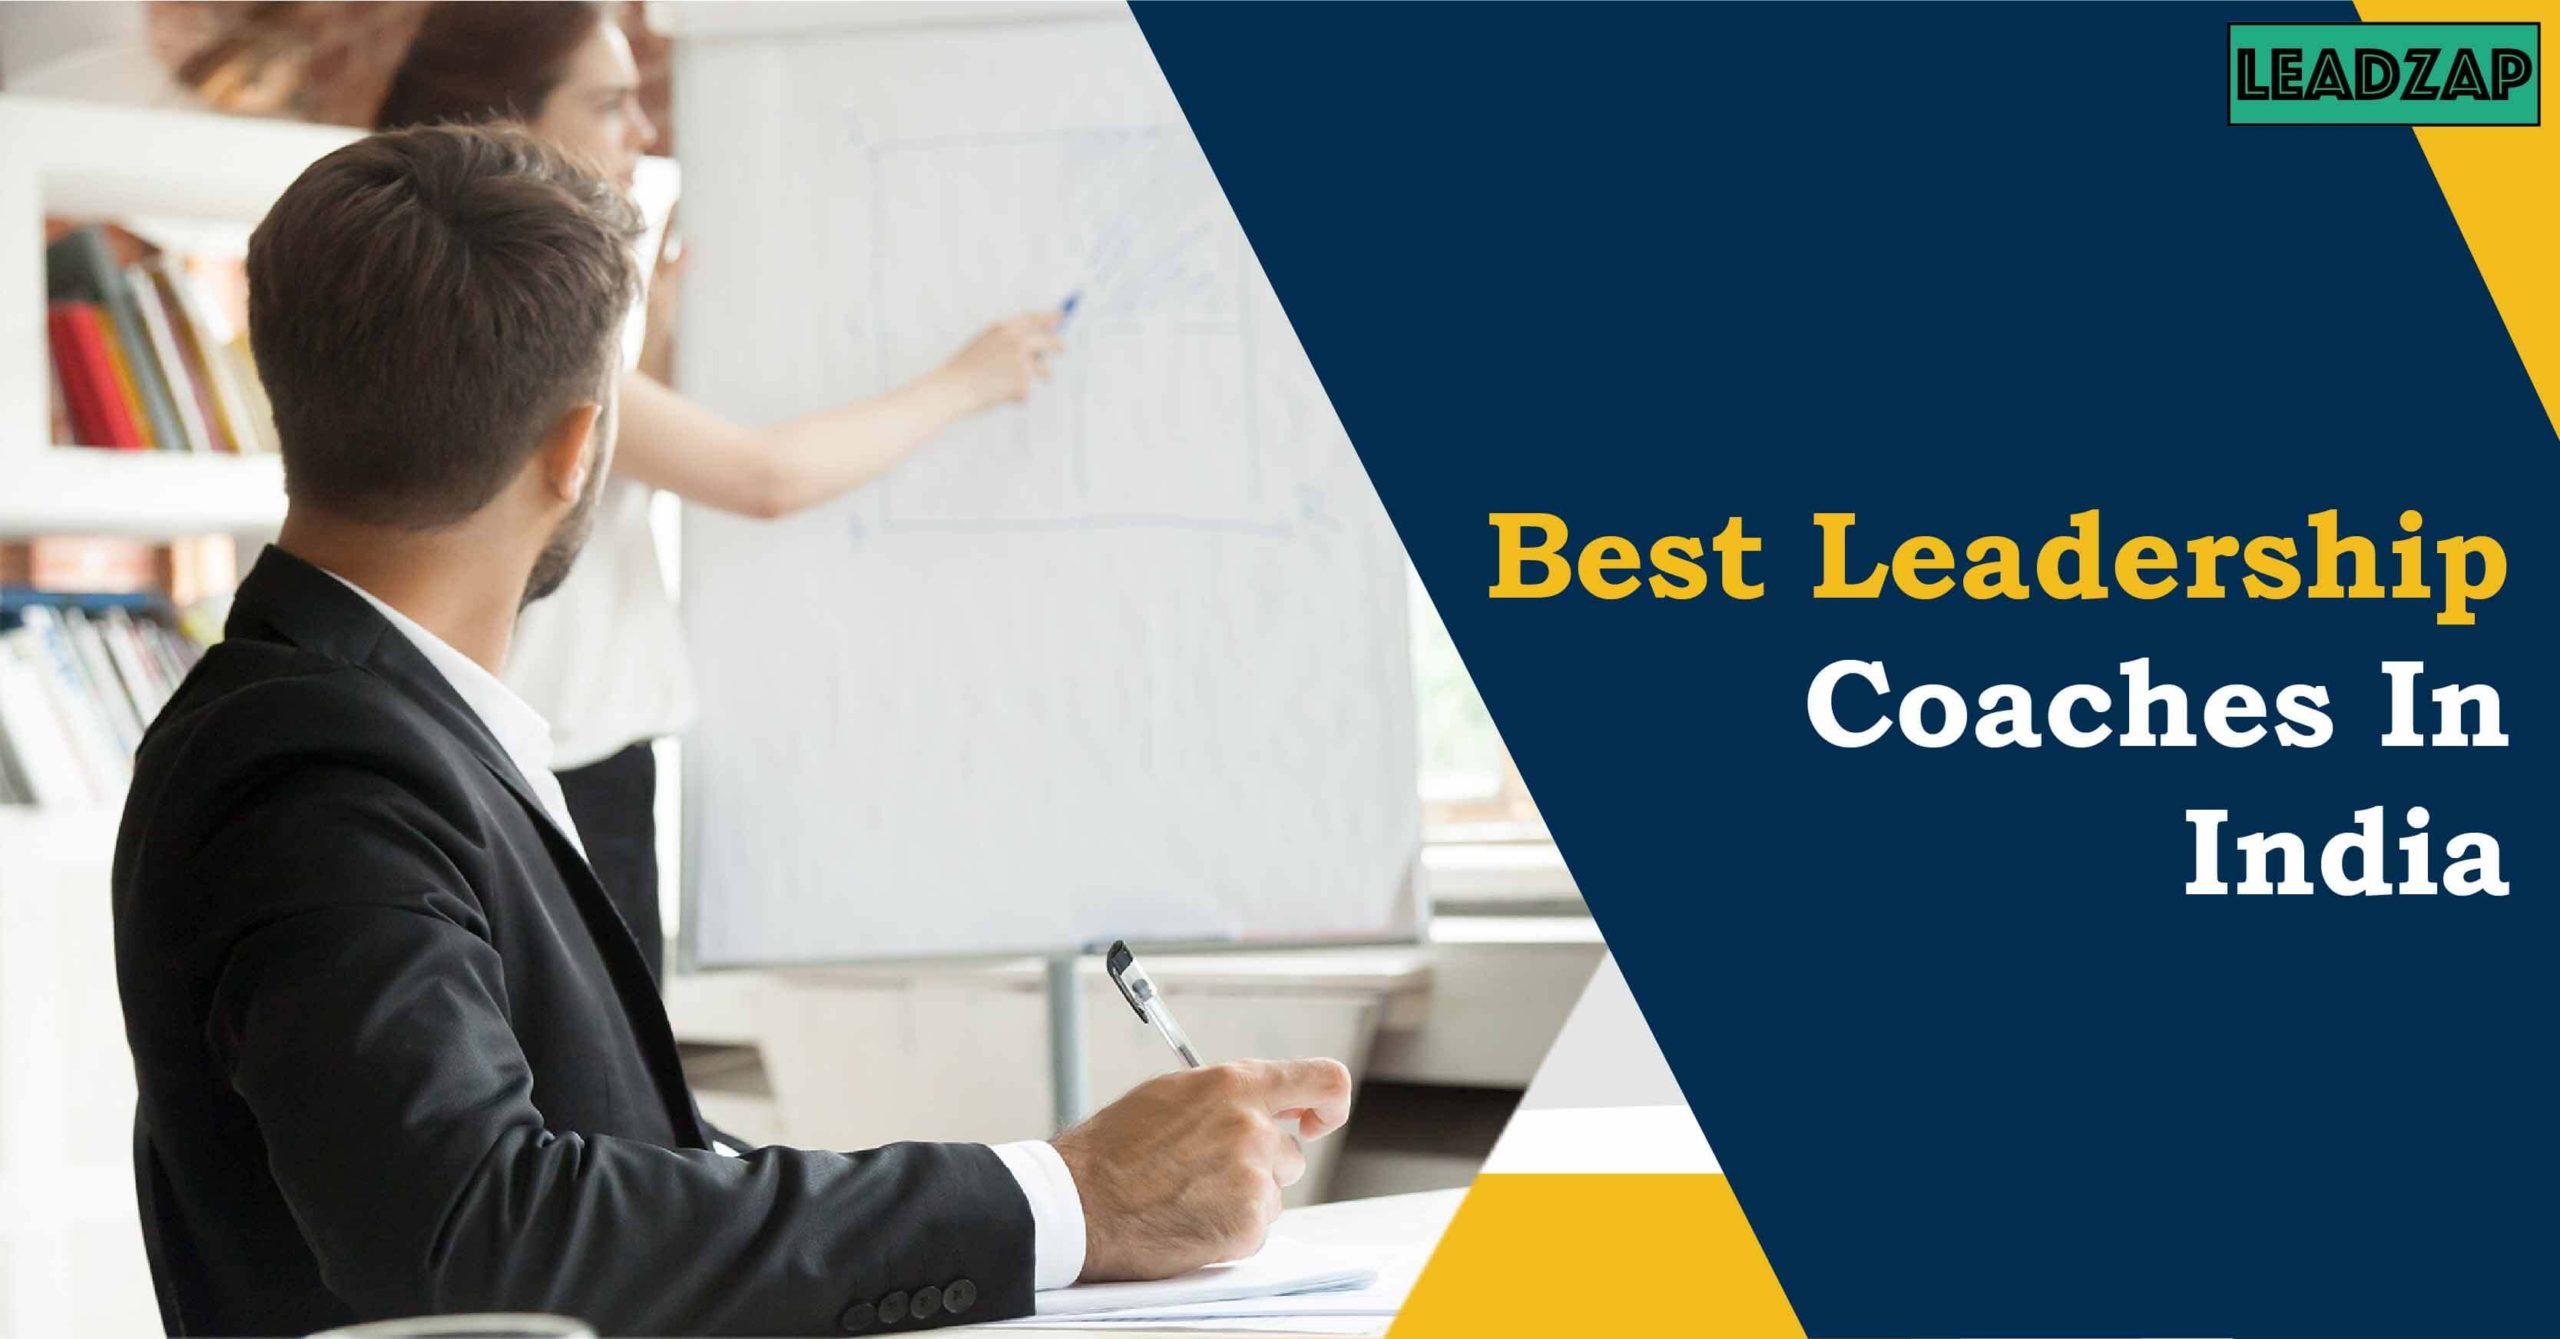 Best Leadership Coaches In India